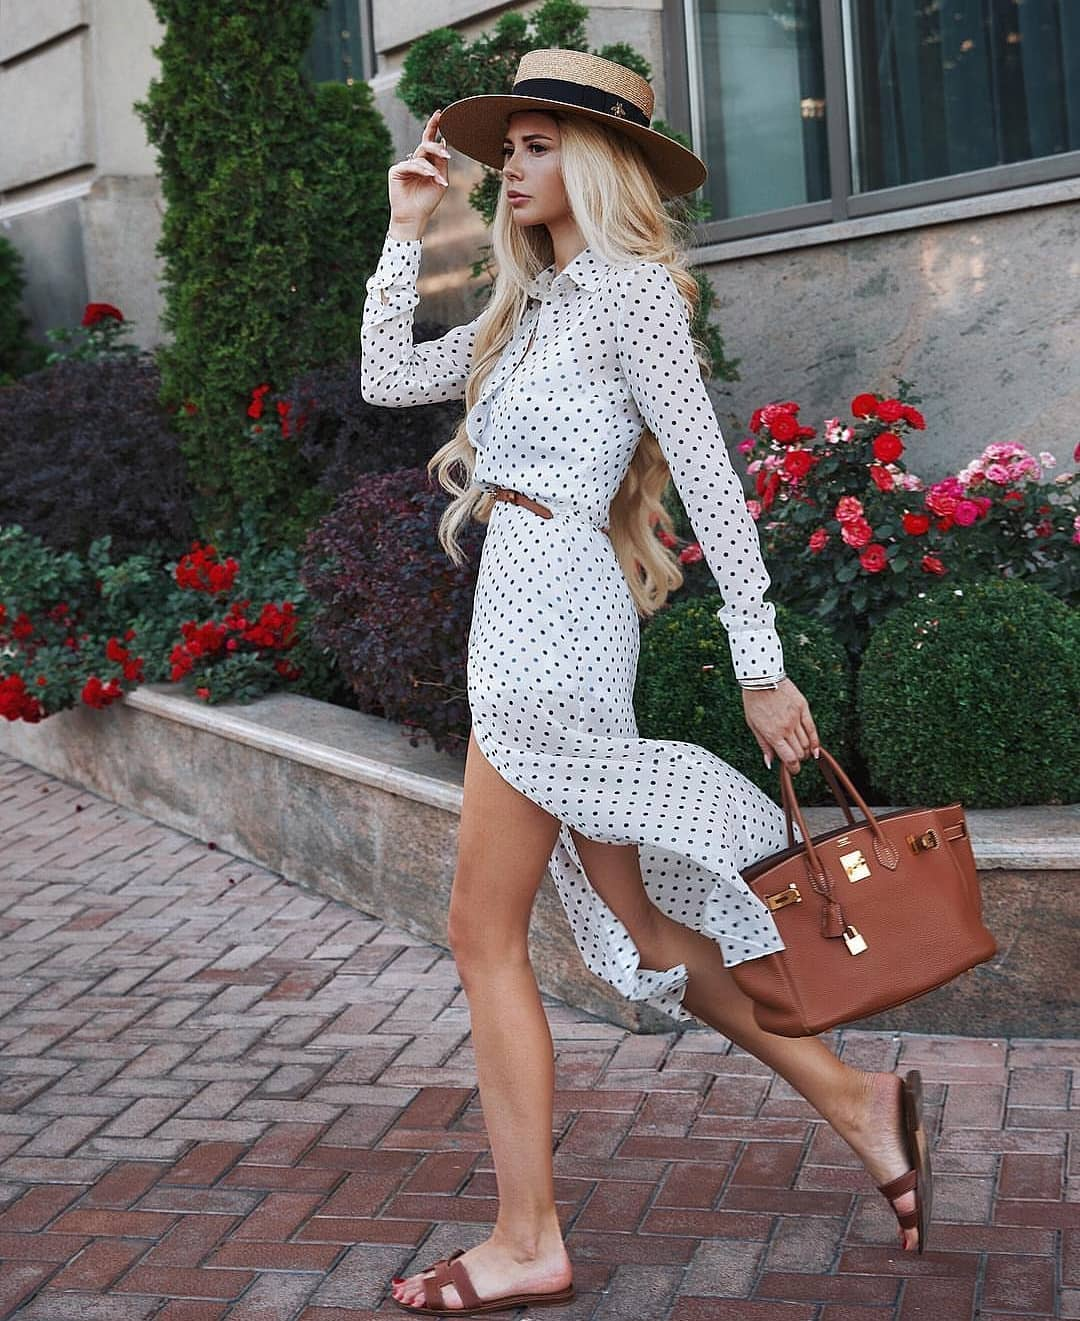 Retro Style White Shirtdress In Black Dots For Summer 2019